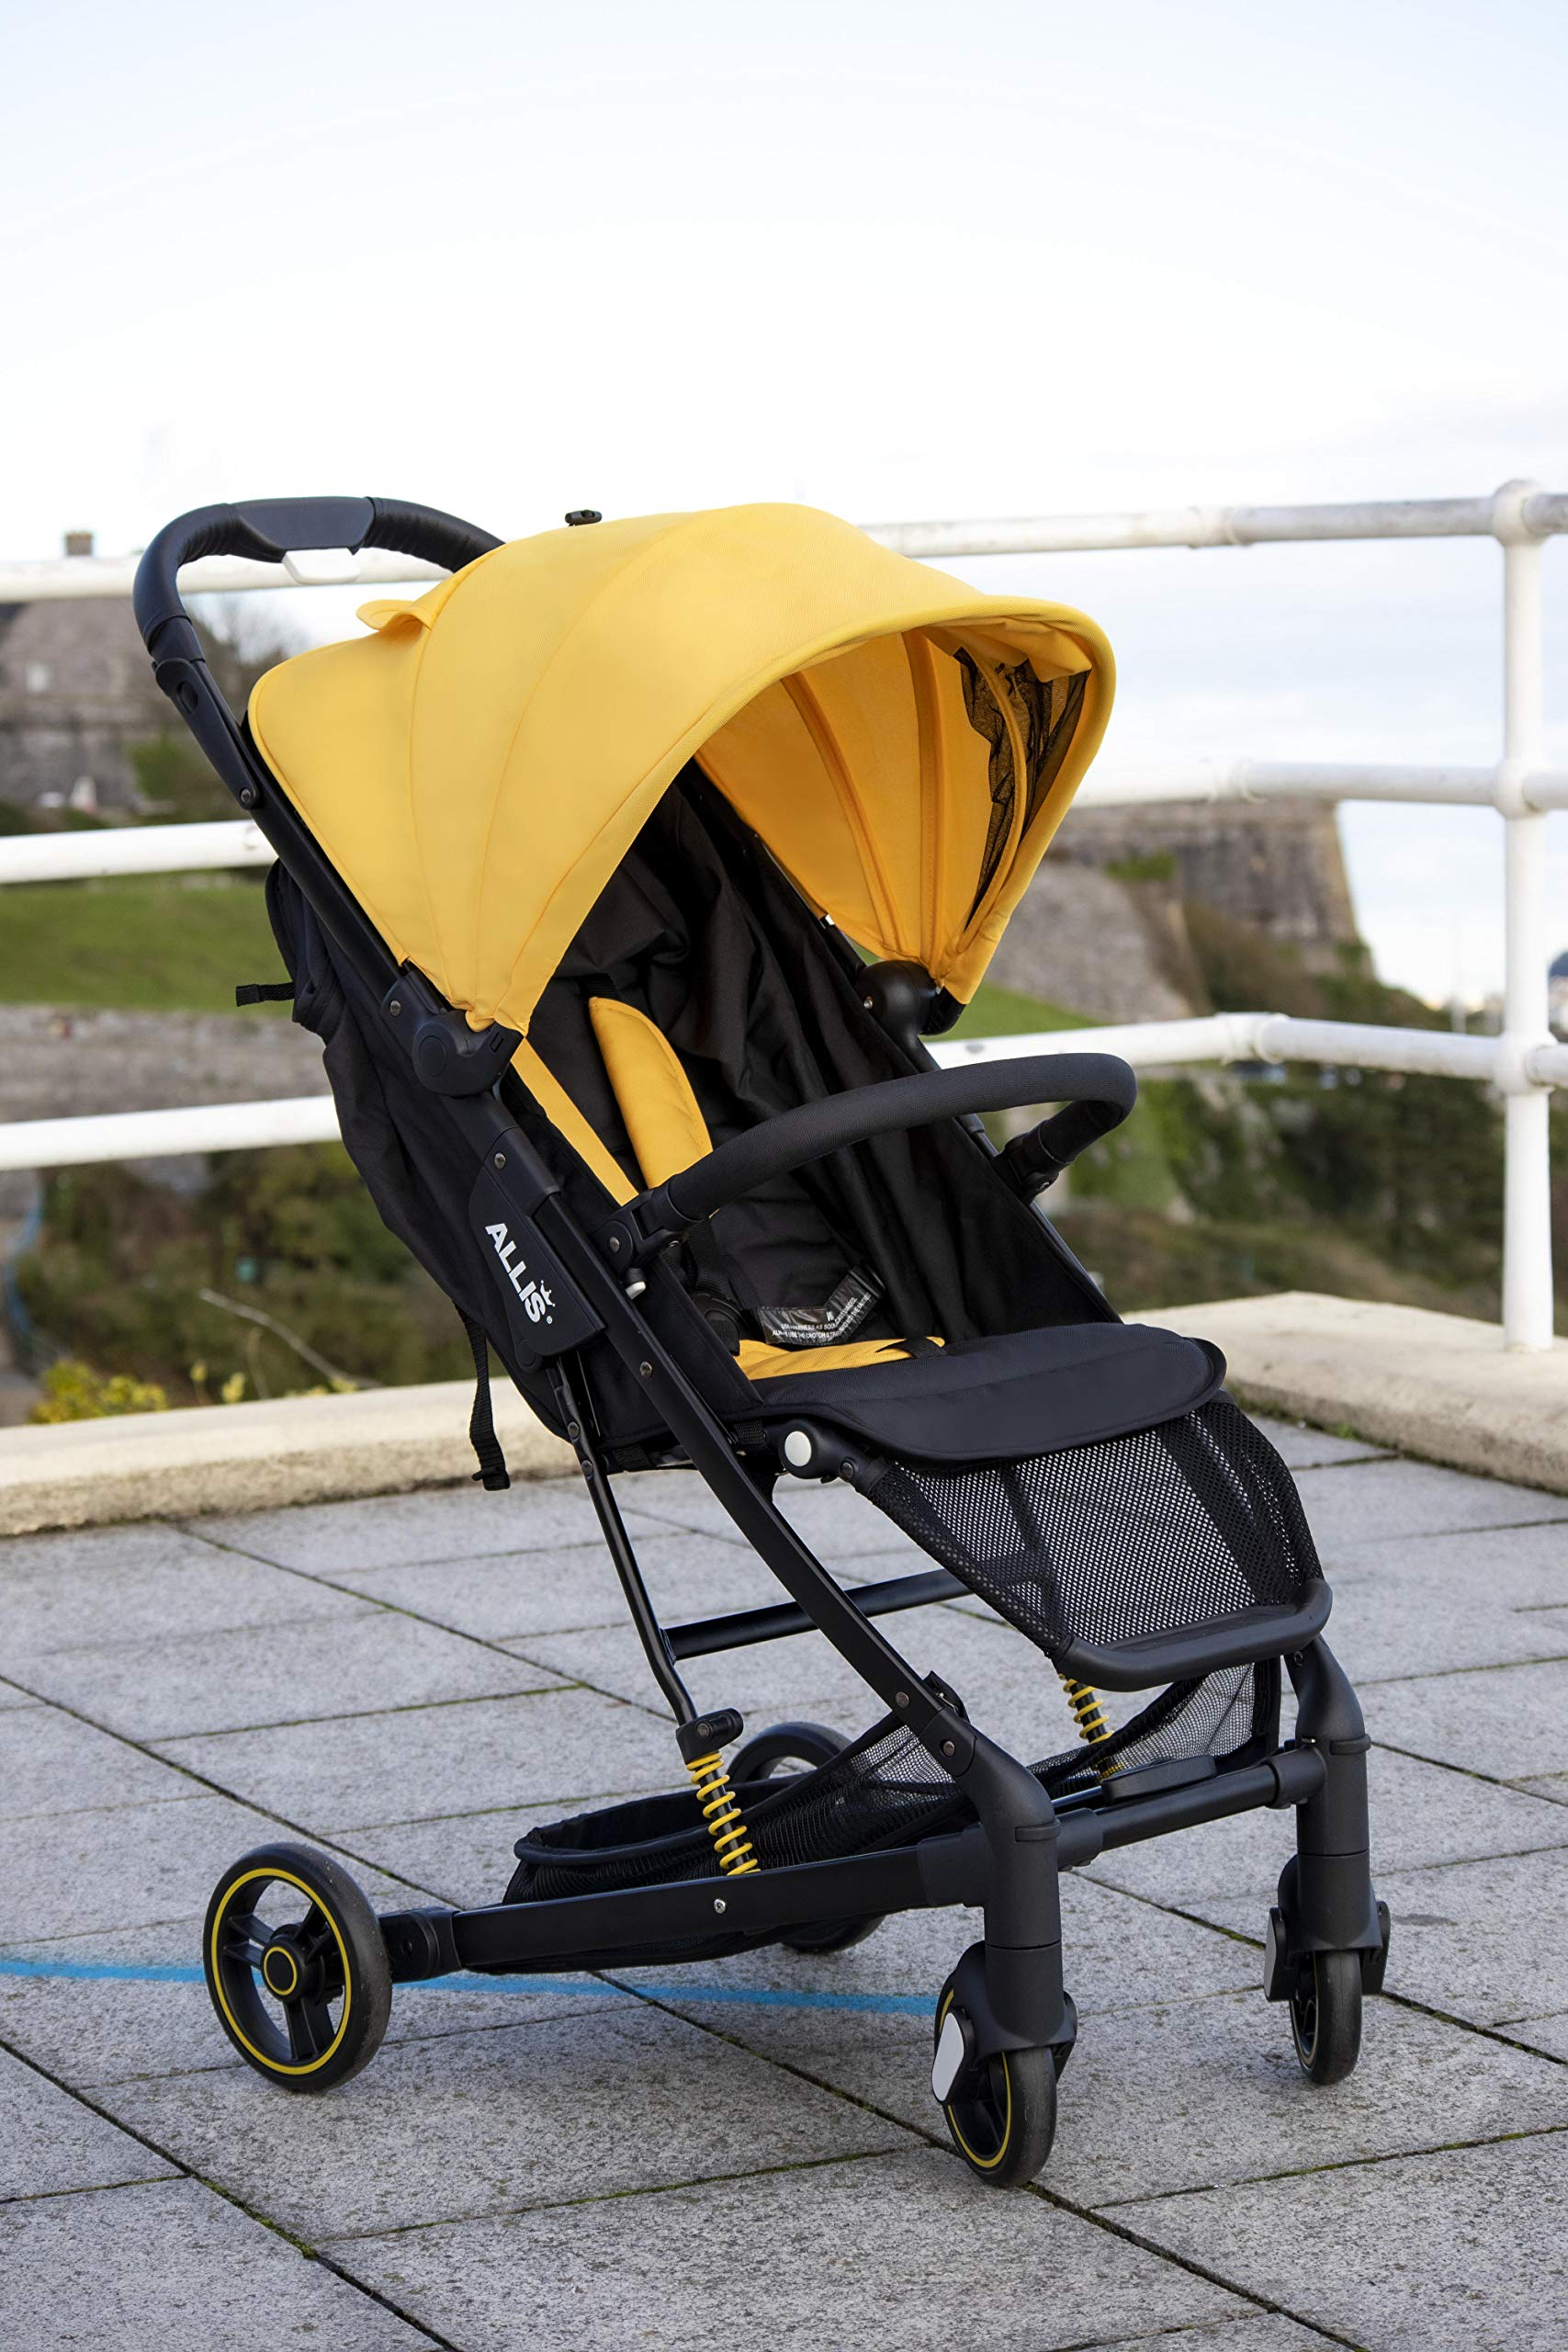 Allis Travel Stroller Baby Buggy Pram Lightweight Pushchair - Yellow Allis Baby Made according to British Standard EN1888, Fire Safety Regulations 1988. Lockable 360 swivel wheels, removable and suspension. Ultralight Design:Aluminium frame. Suitable from 6M - 4Ys ( upto 15Kg Approx) 2